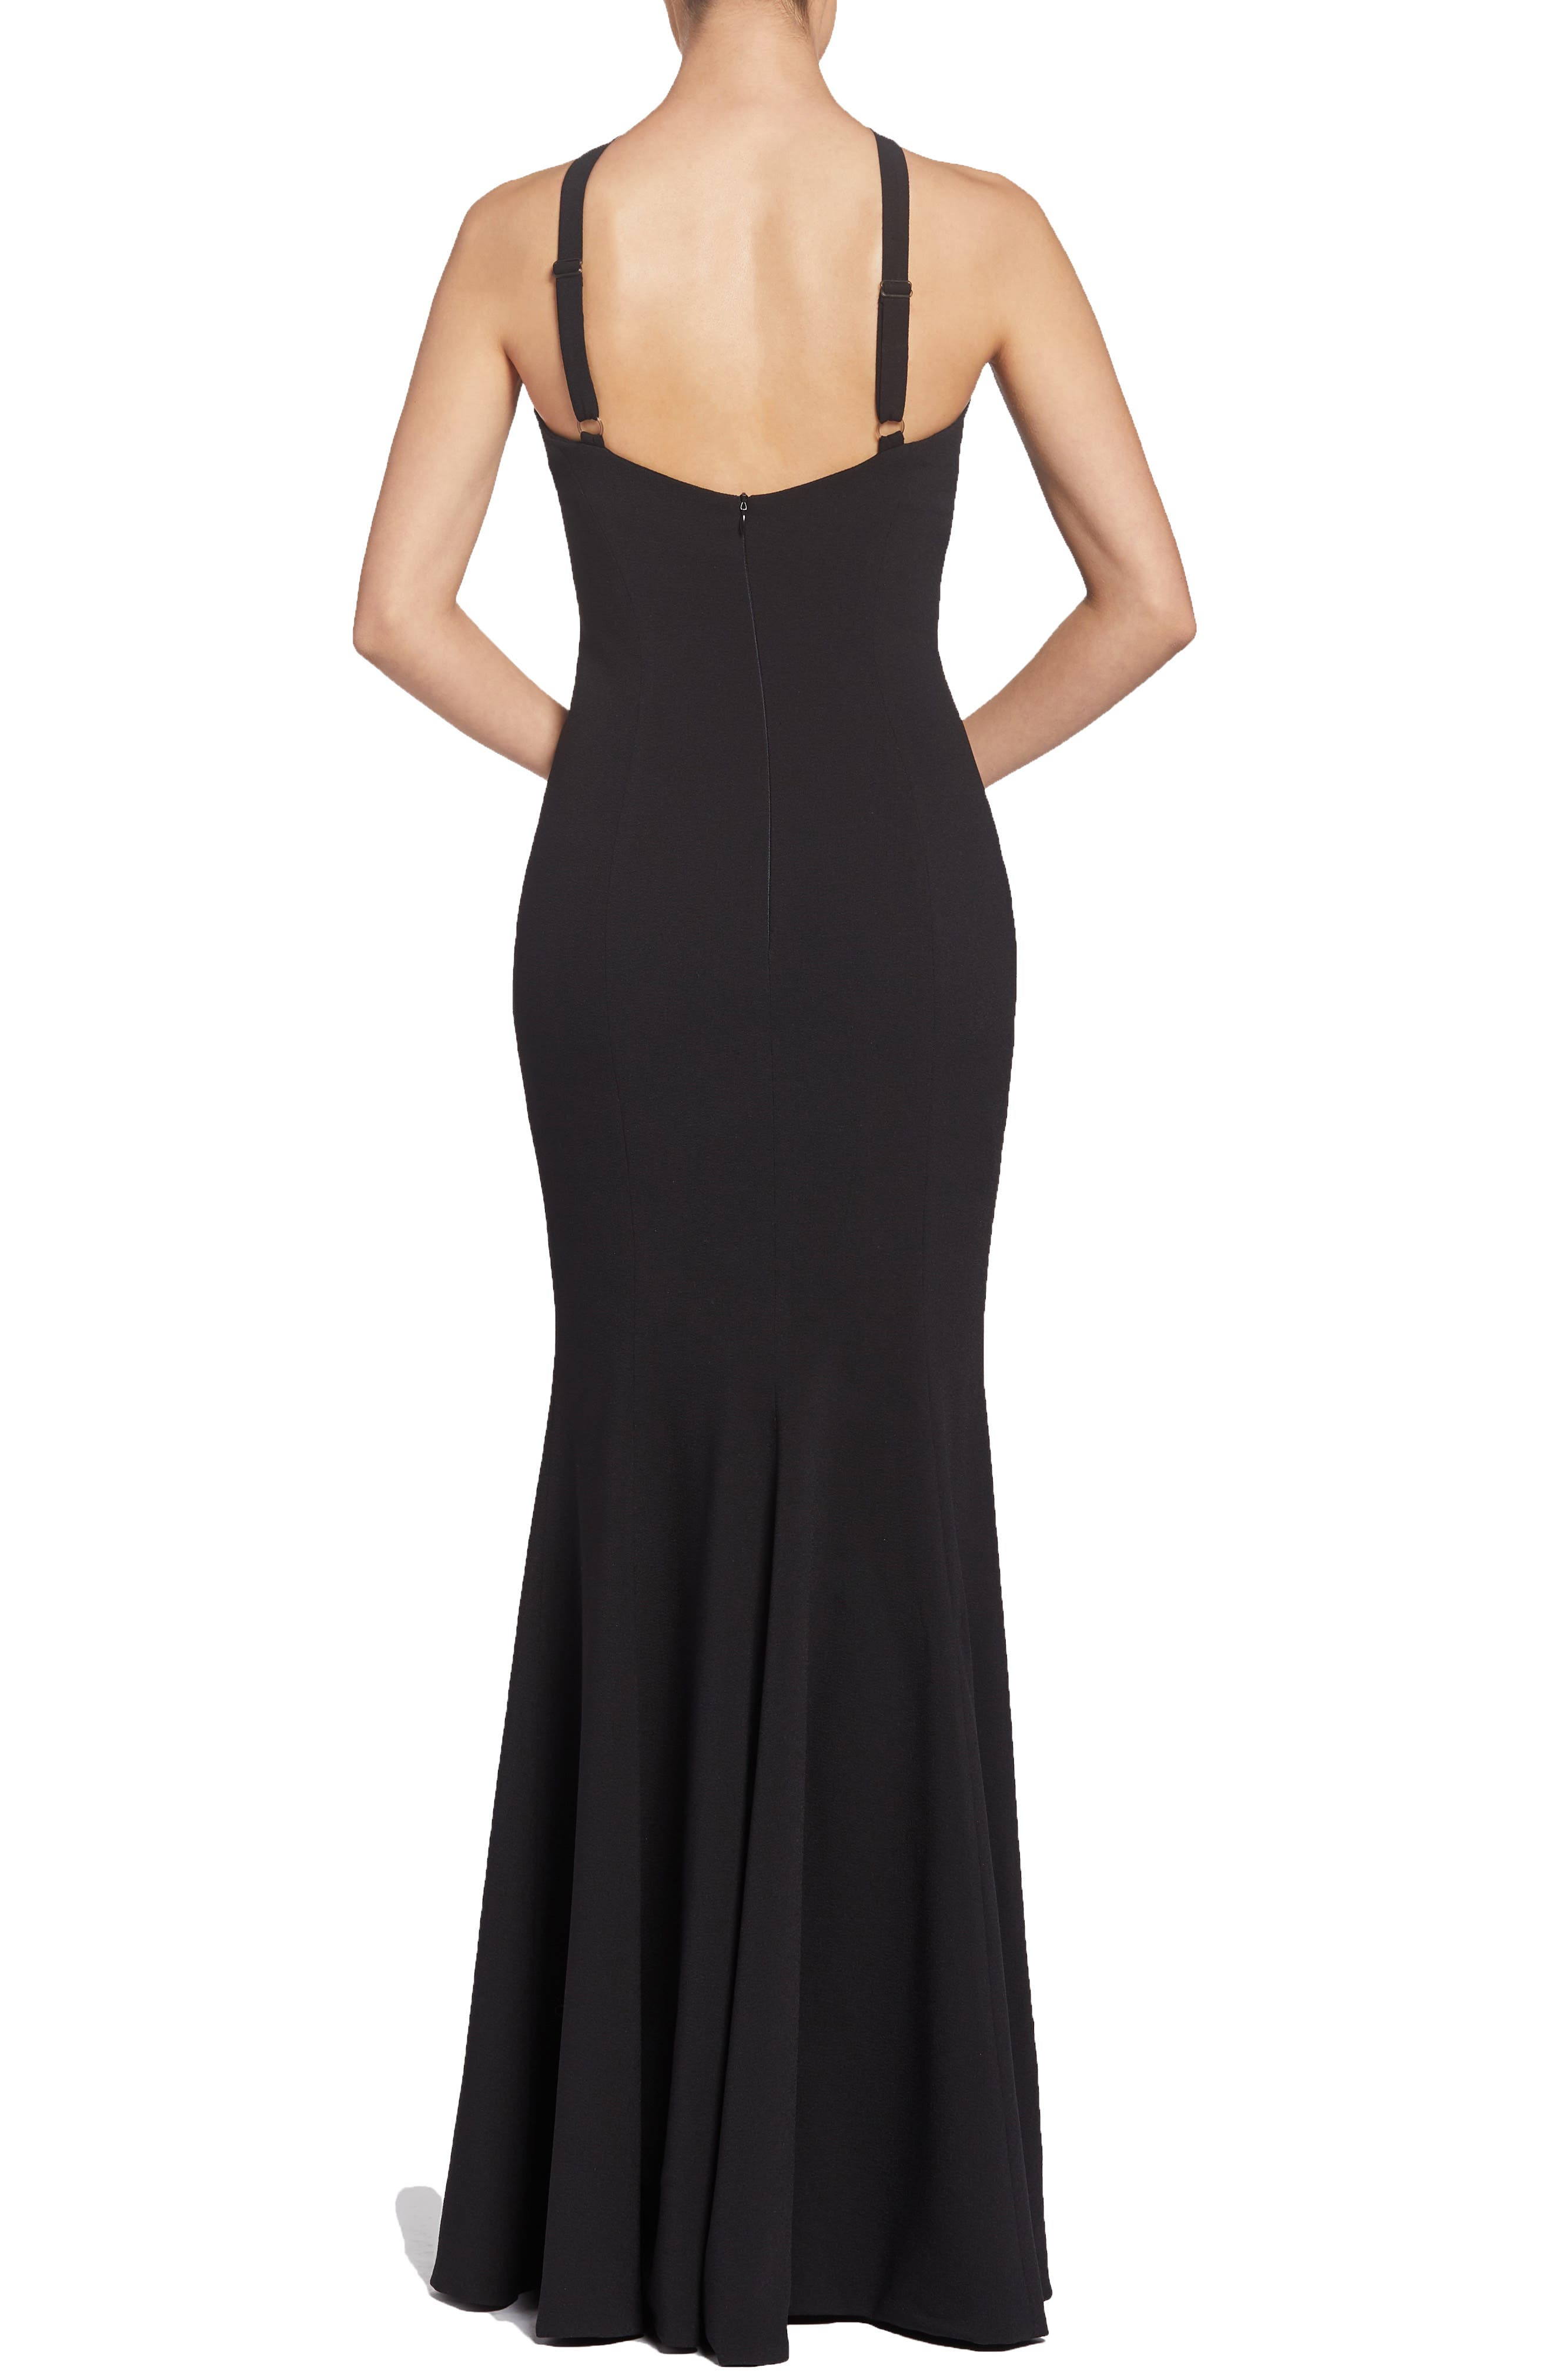 Brianna Halter Style Trumpet Gown,                             Alternate thumbnail 2, color,                             BLACK